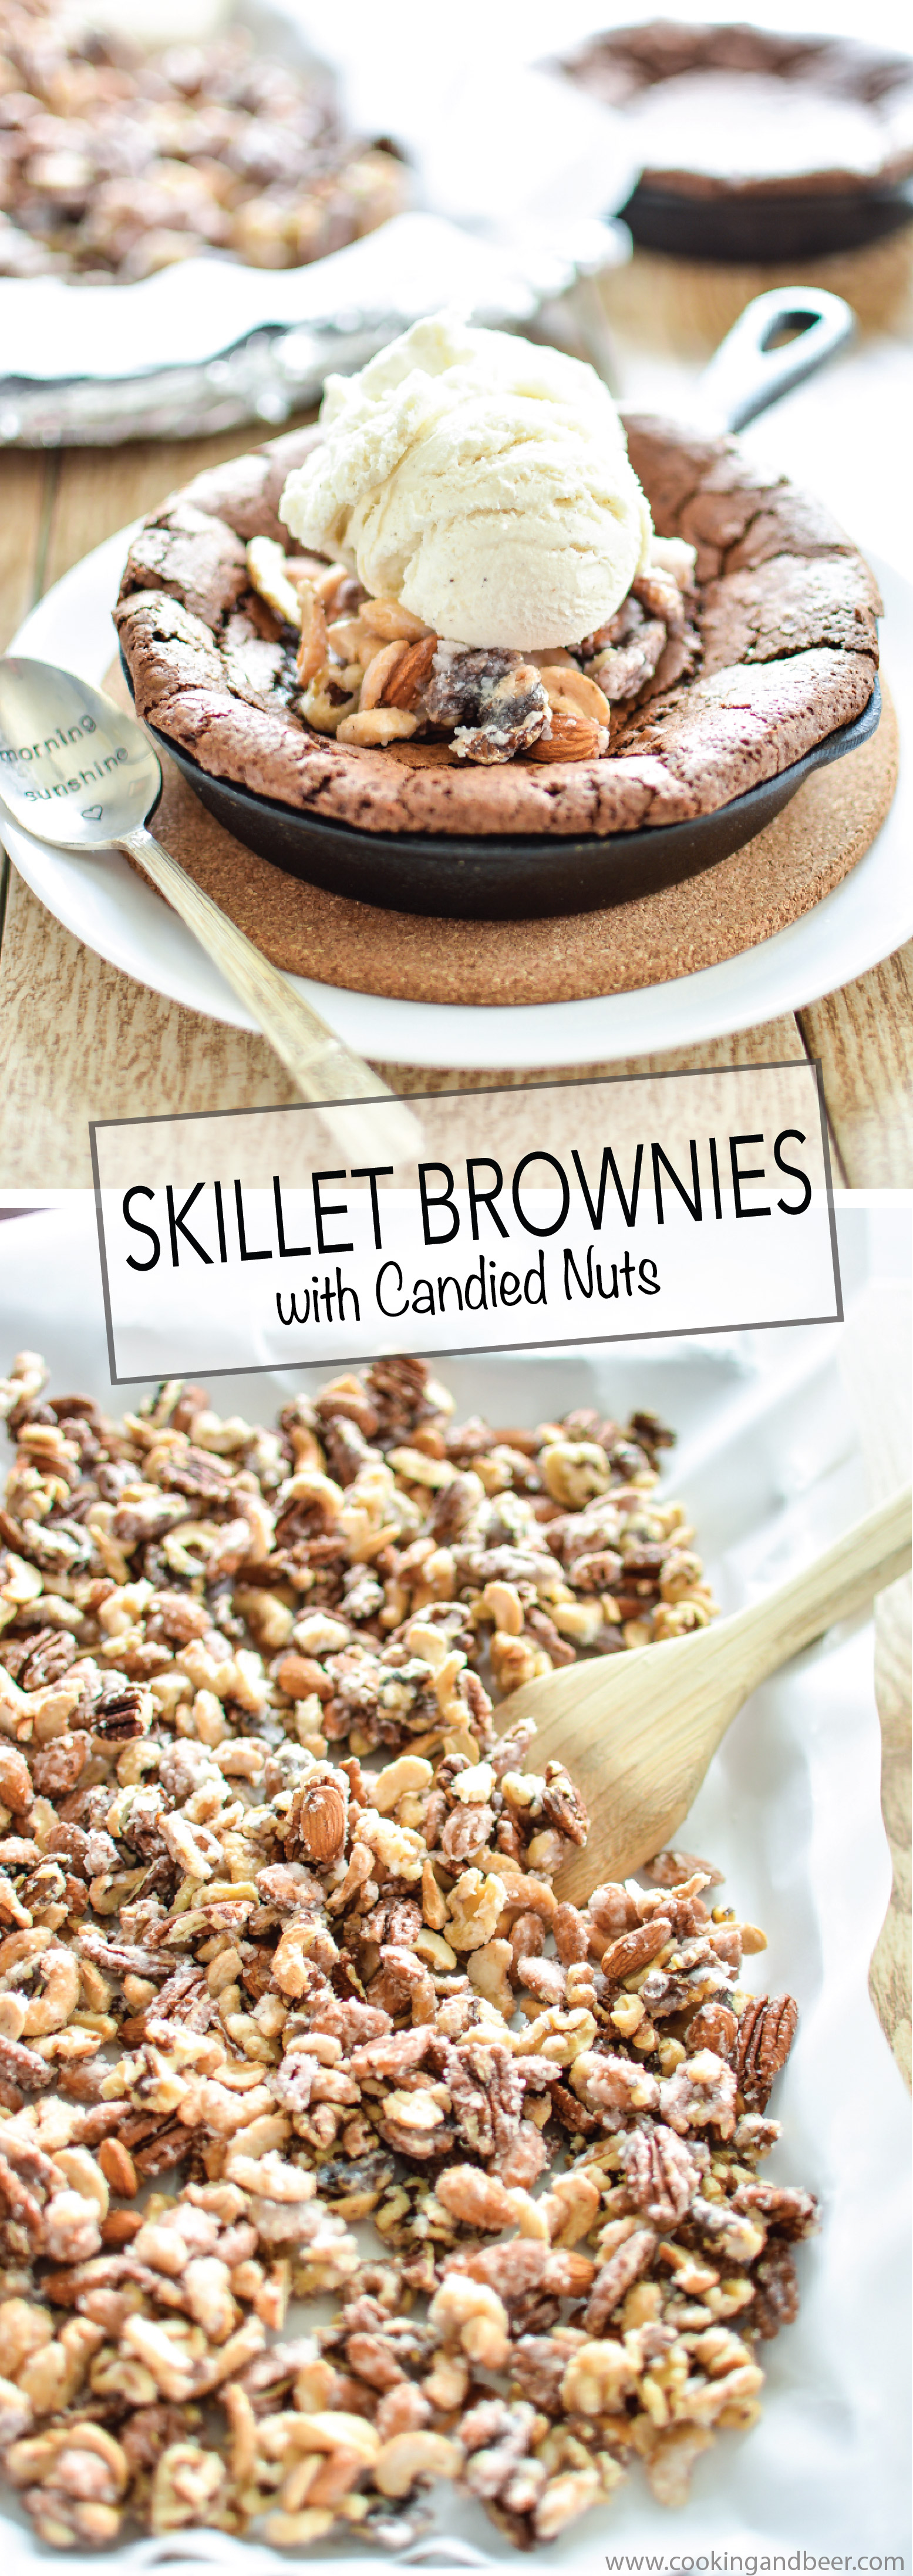 Skillet Brownies with Salty and Sweet Candied Nuts are a quick and perfectly sweet dessert recipe! | www.cookingandbeer.com